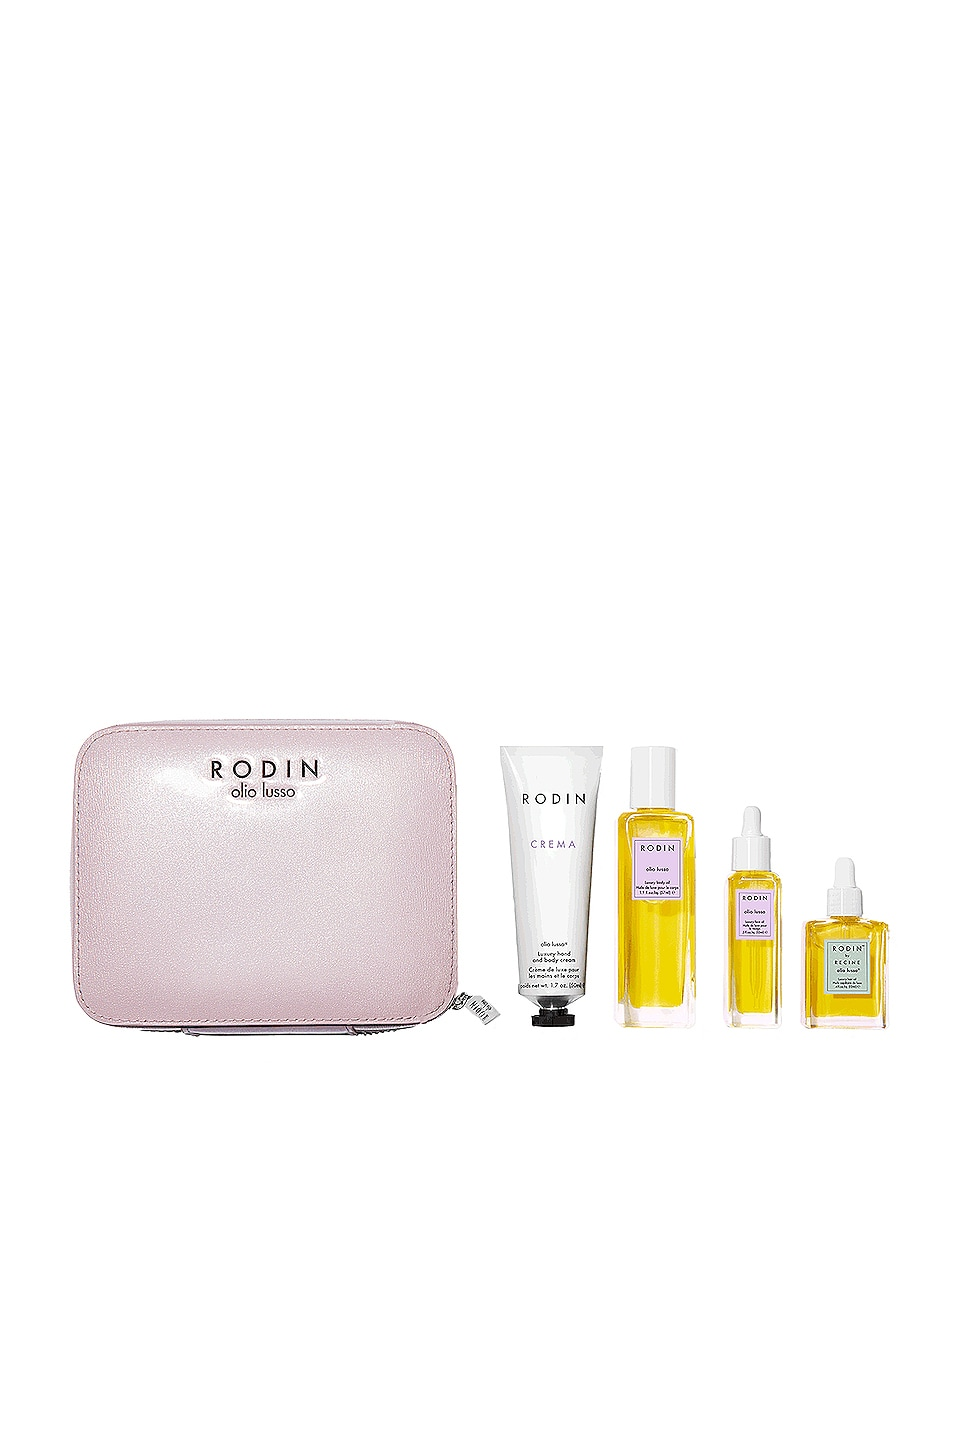 Rodin Olio Lusso Travel Kit in Lavender Absolute